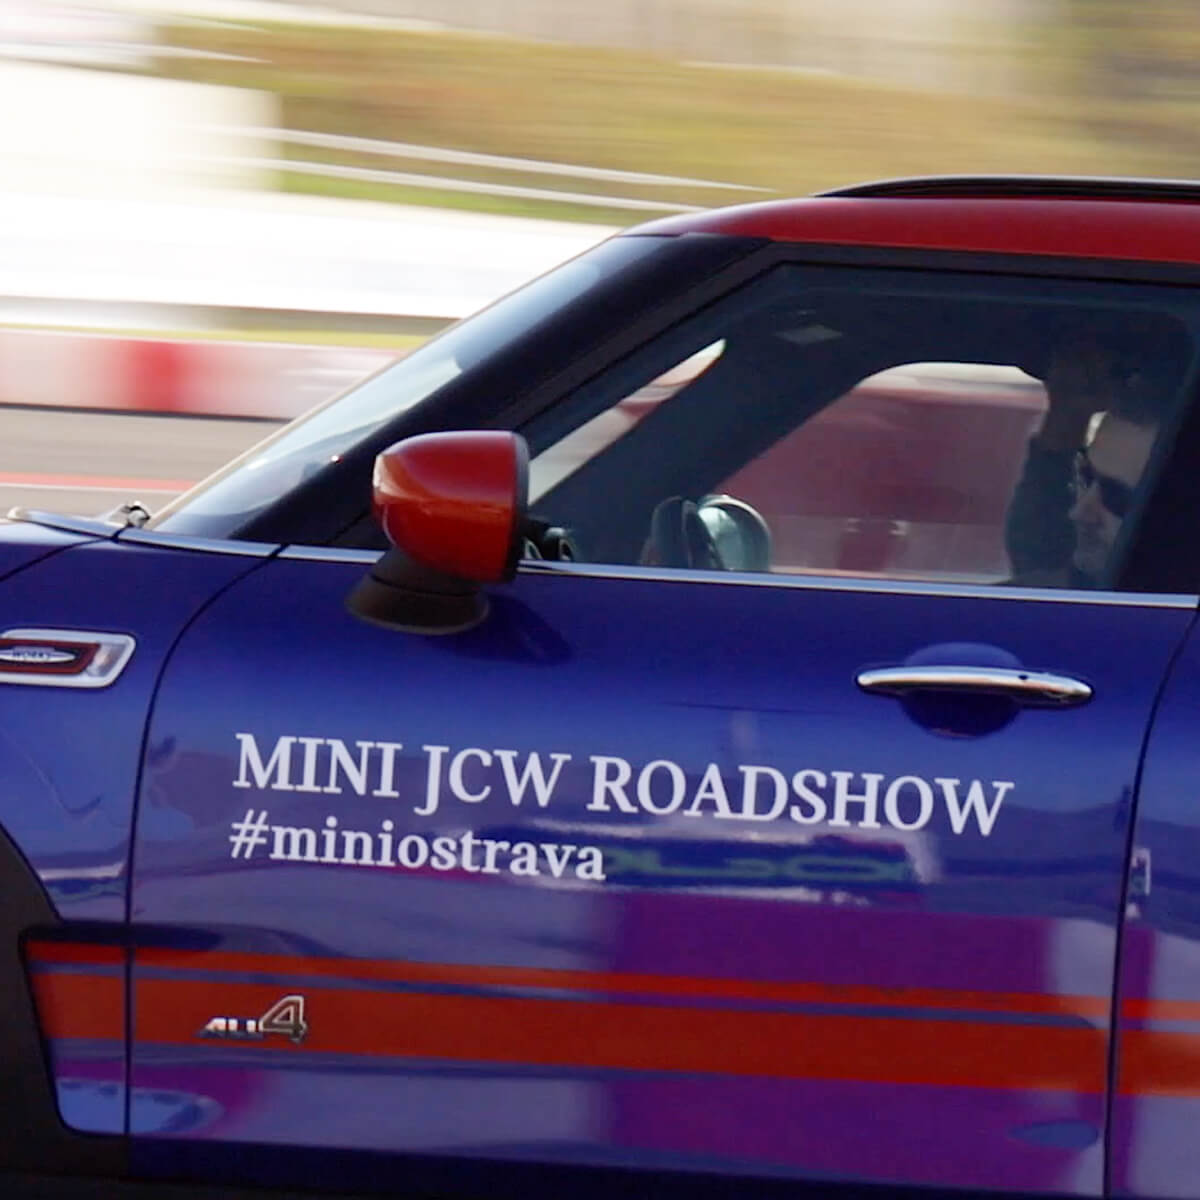 MINI JCW ROADSHOW